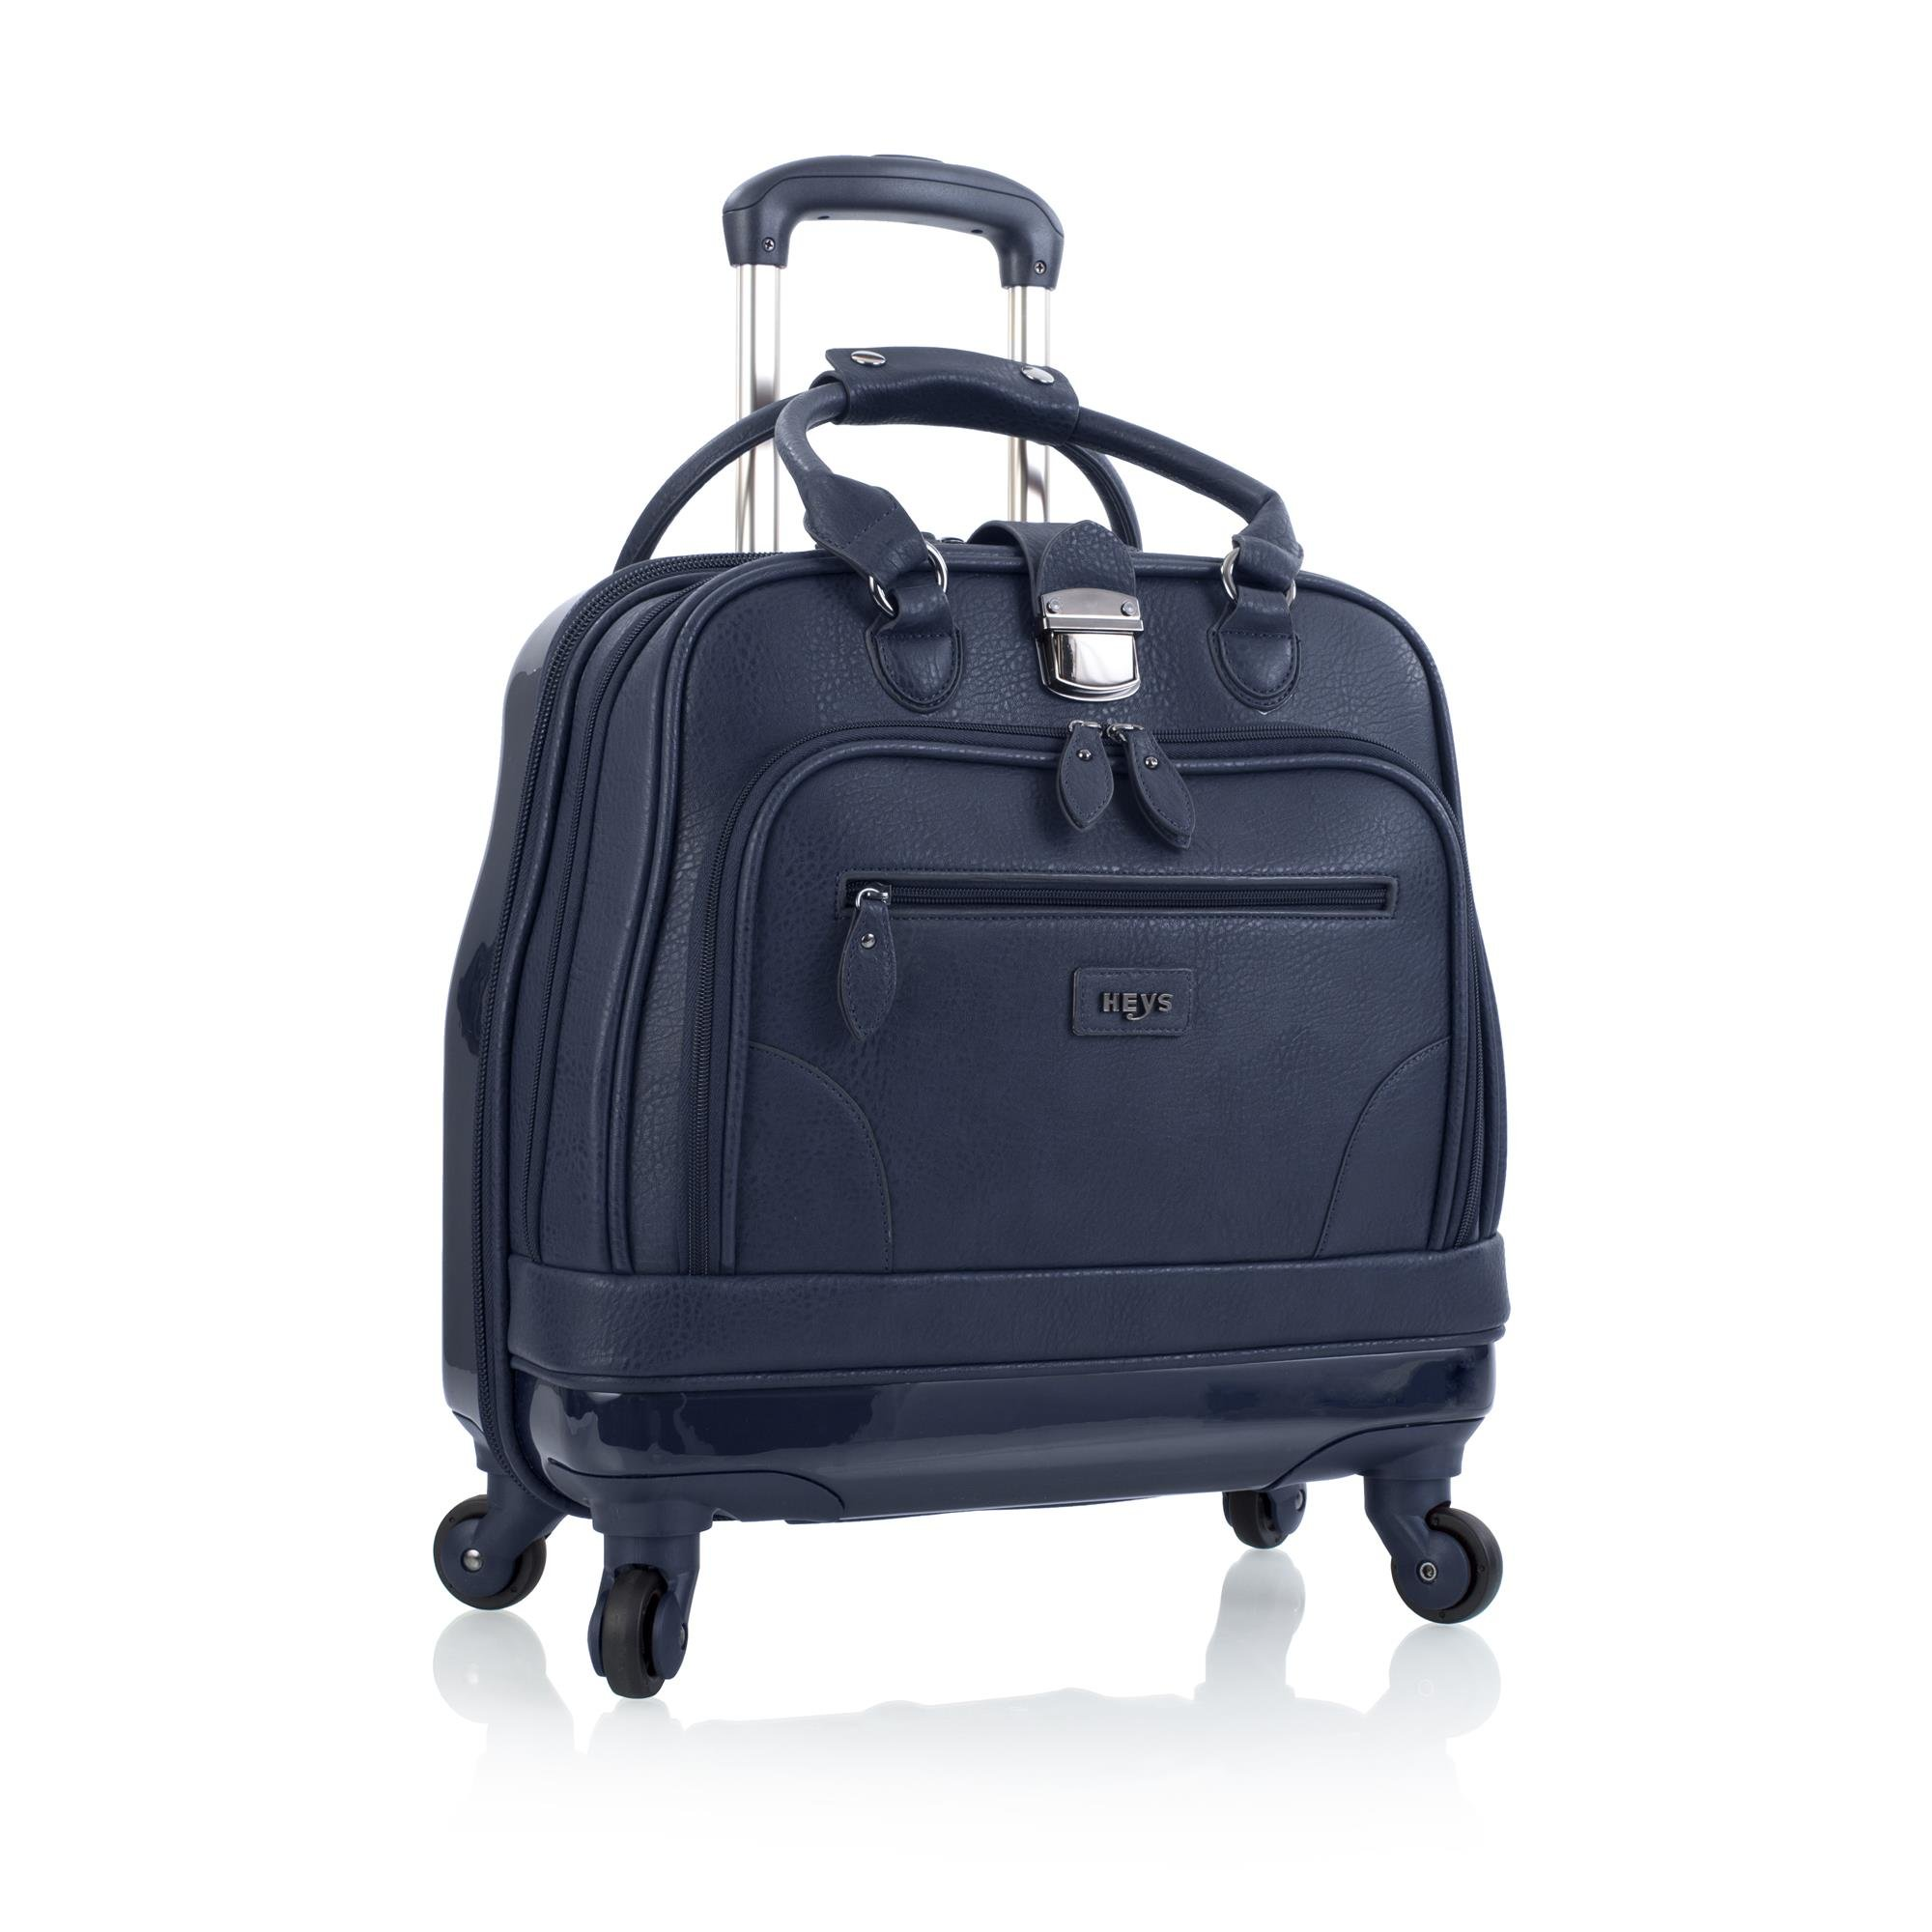 Heys America Nottingham Executive Business Case Rolling Luggage, Navy by HEYS AMERICA